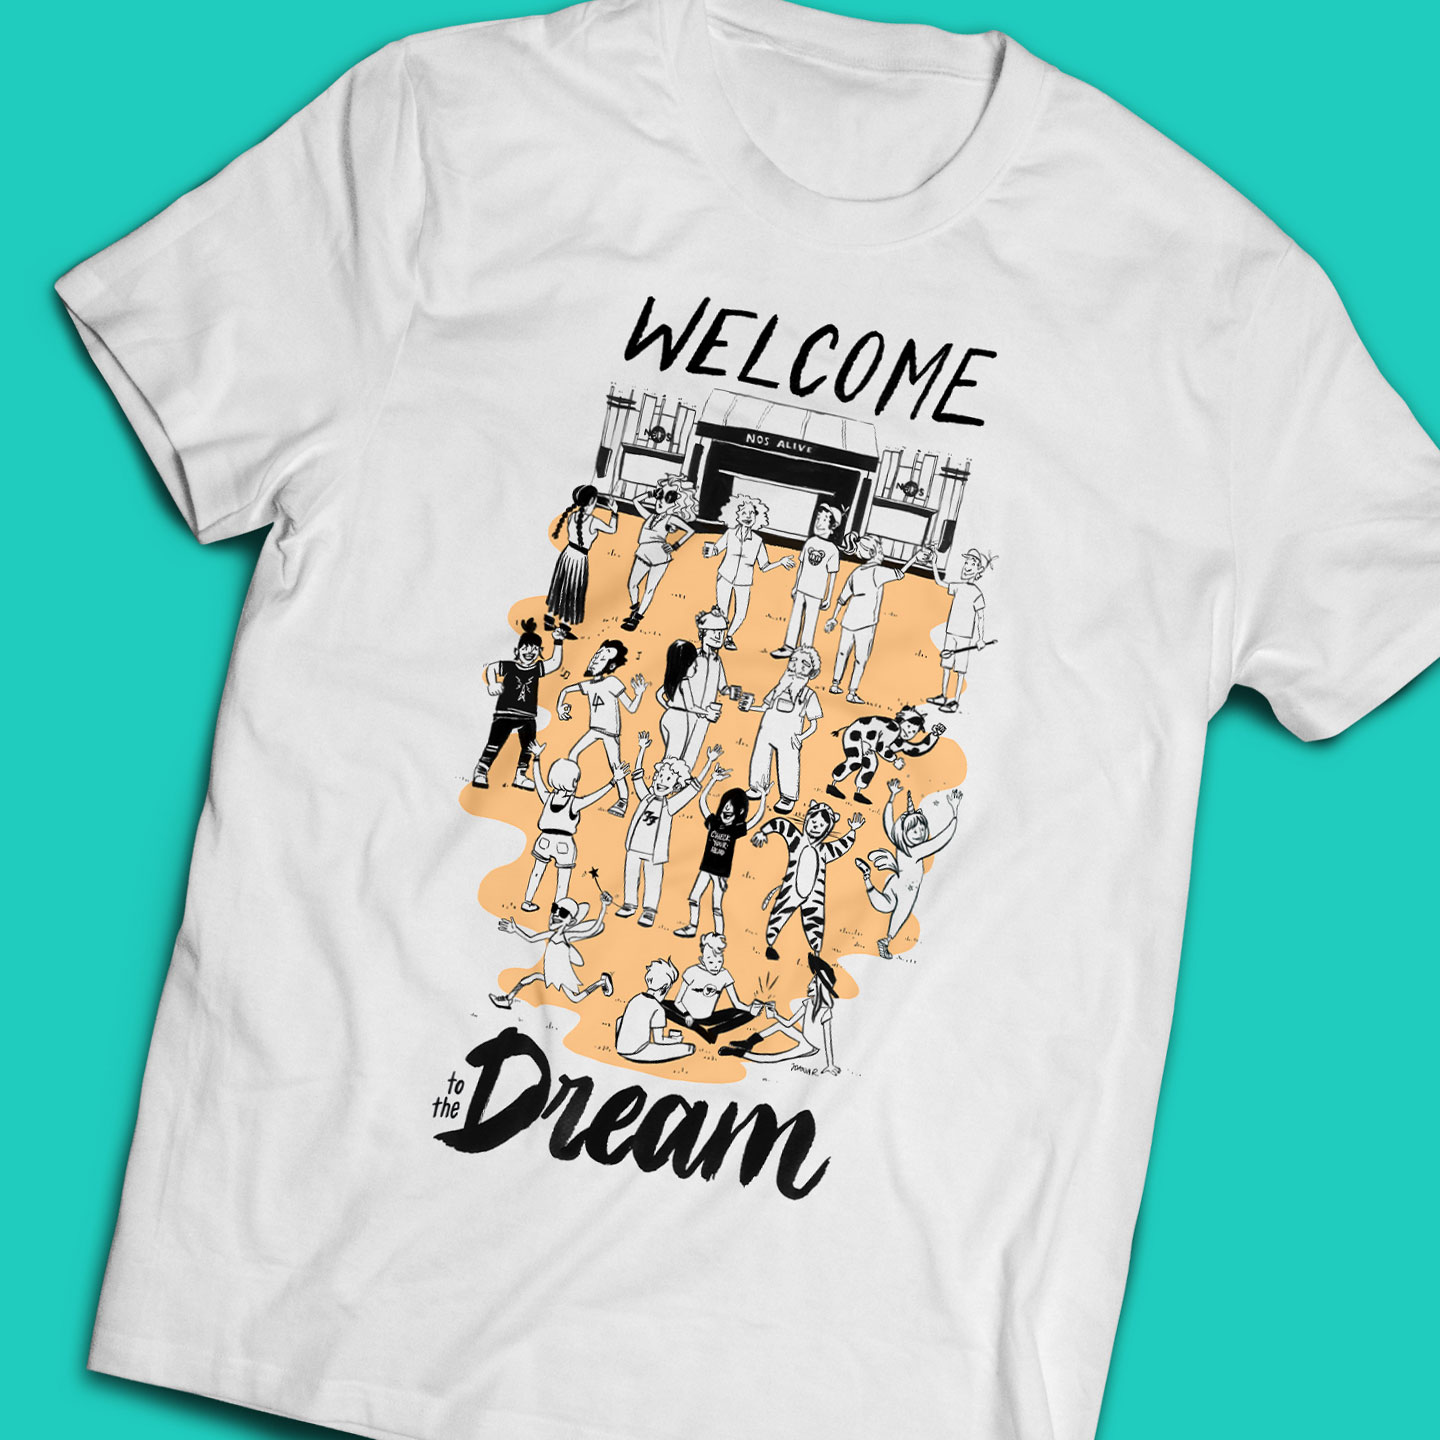 Welcome to the Dream t-shirt